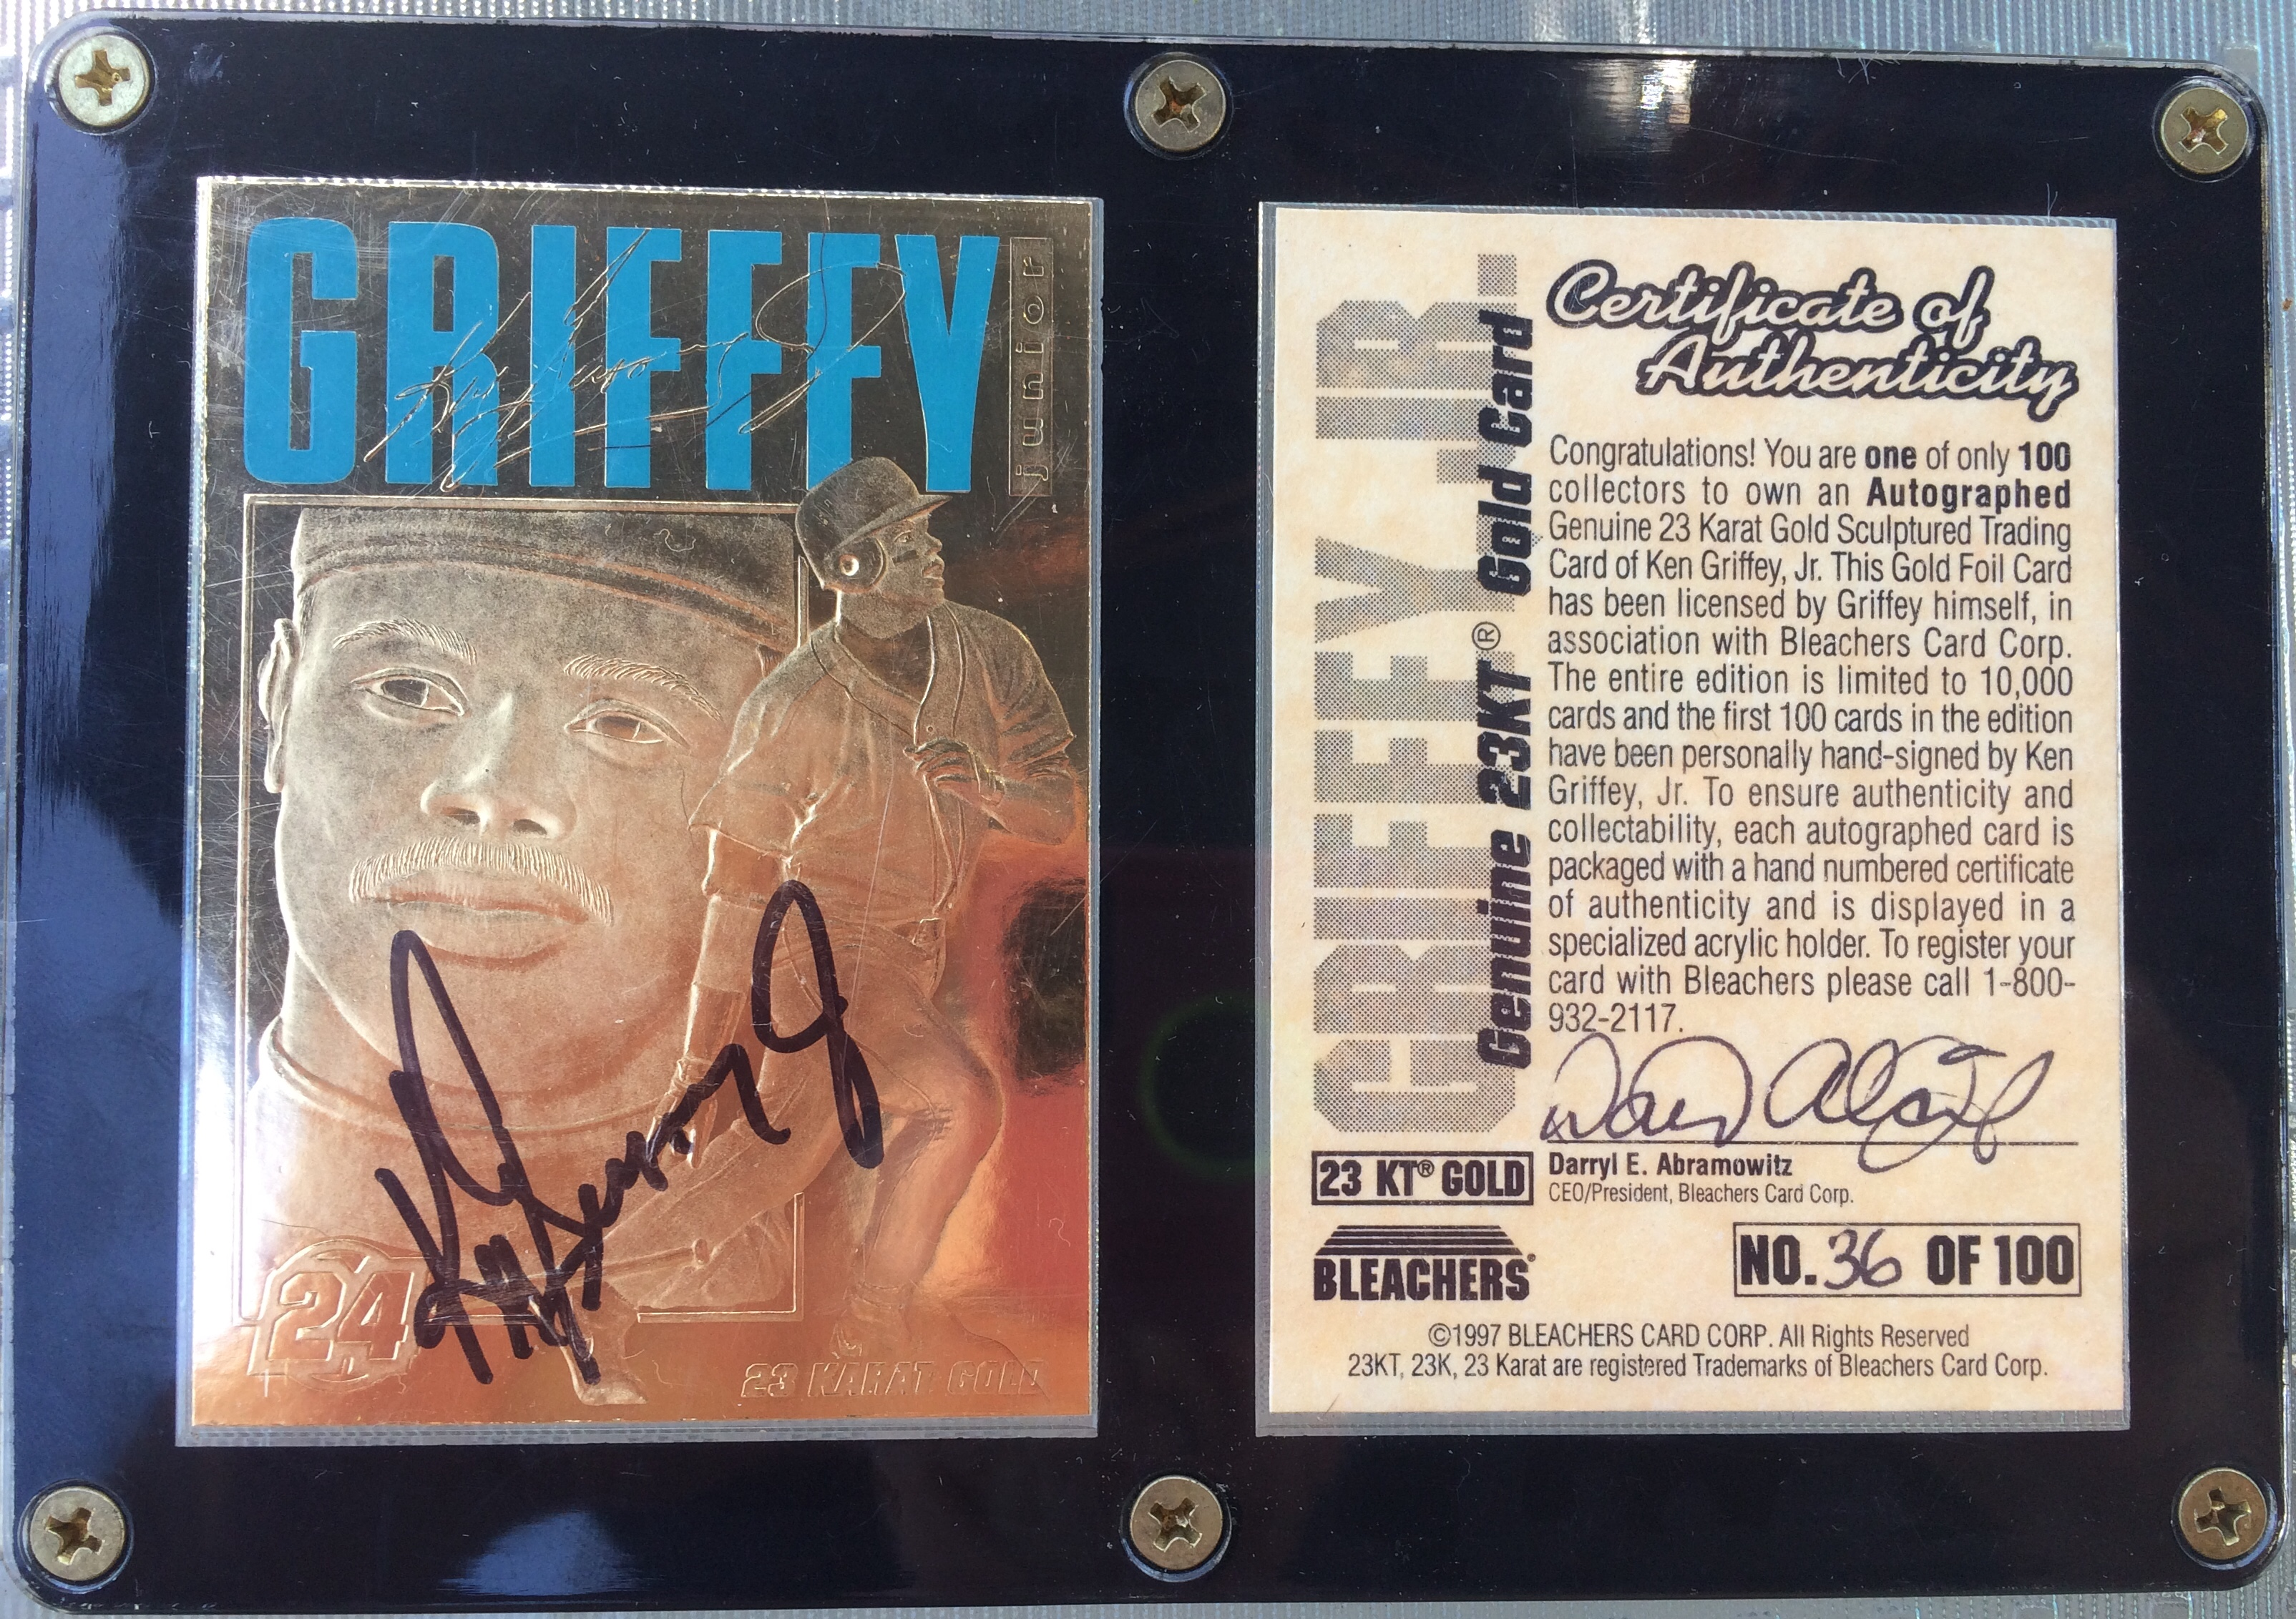 Ken Griffey Jr. Autographed 23kt. Gold Card